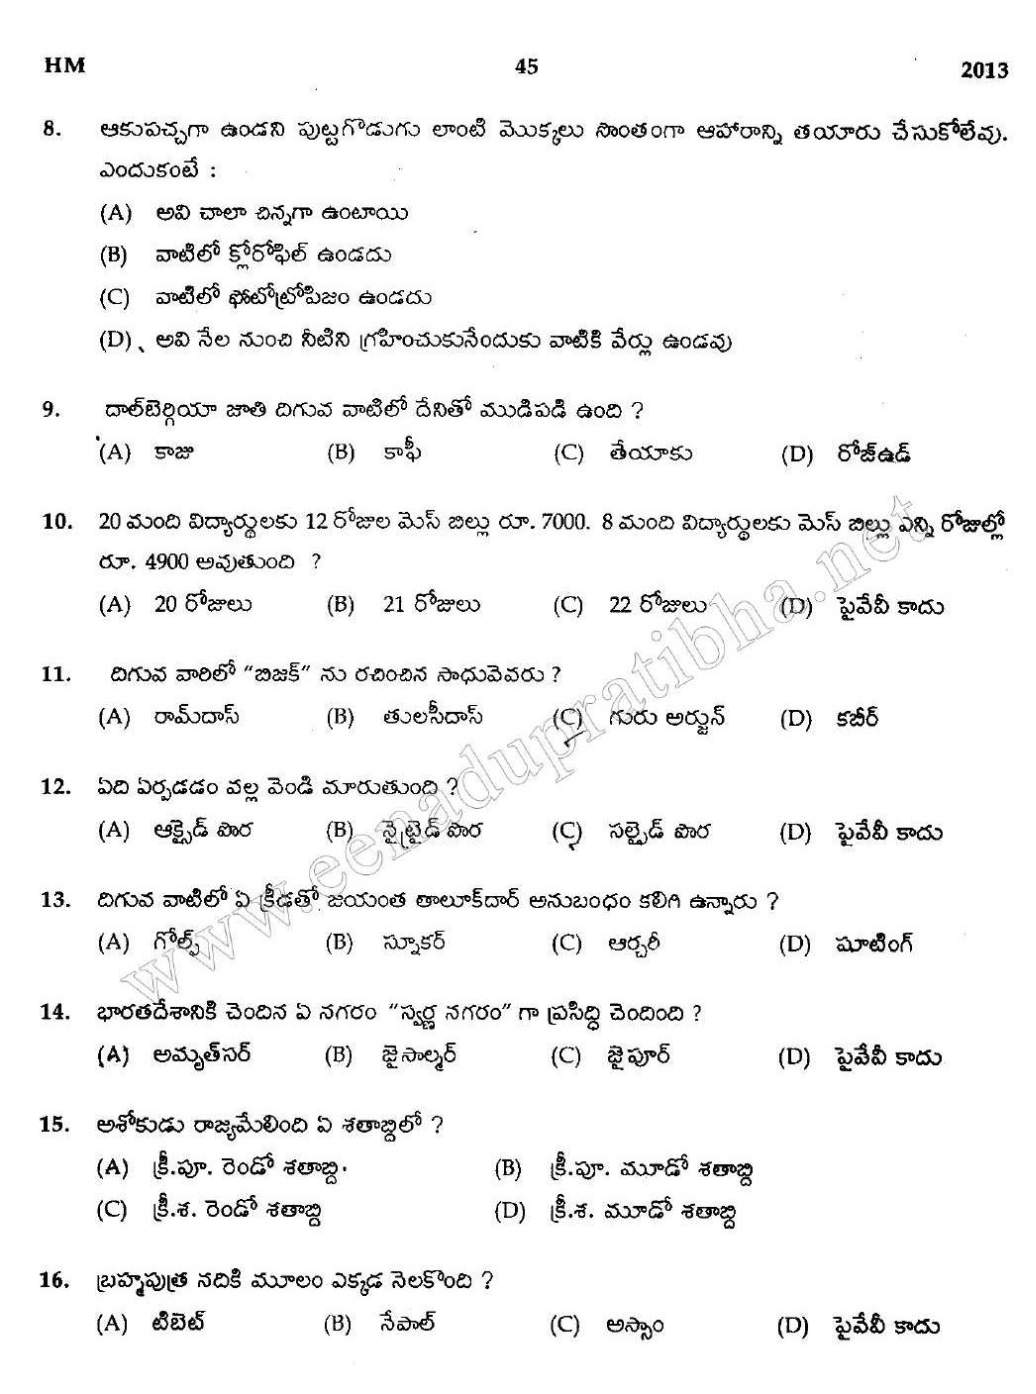 bad question paper